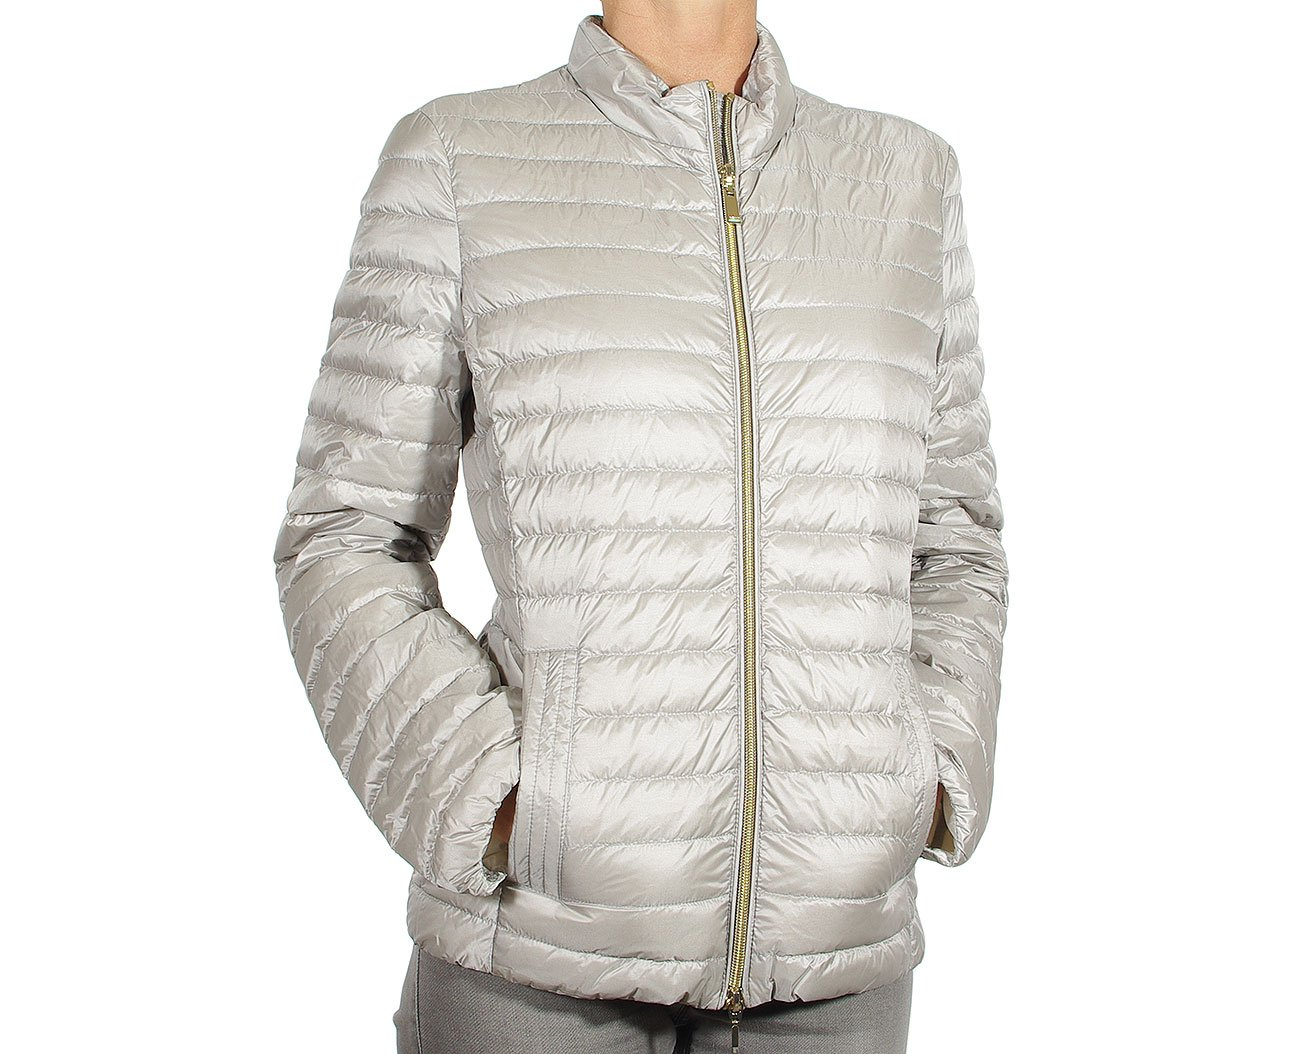 GEOX w8225b kurtka woman jacket sleet grey/blanc